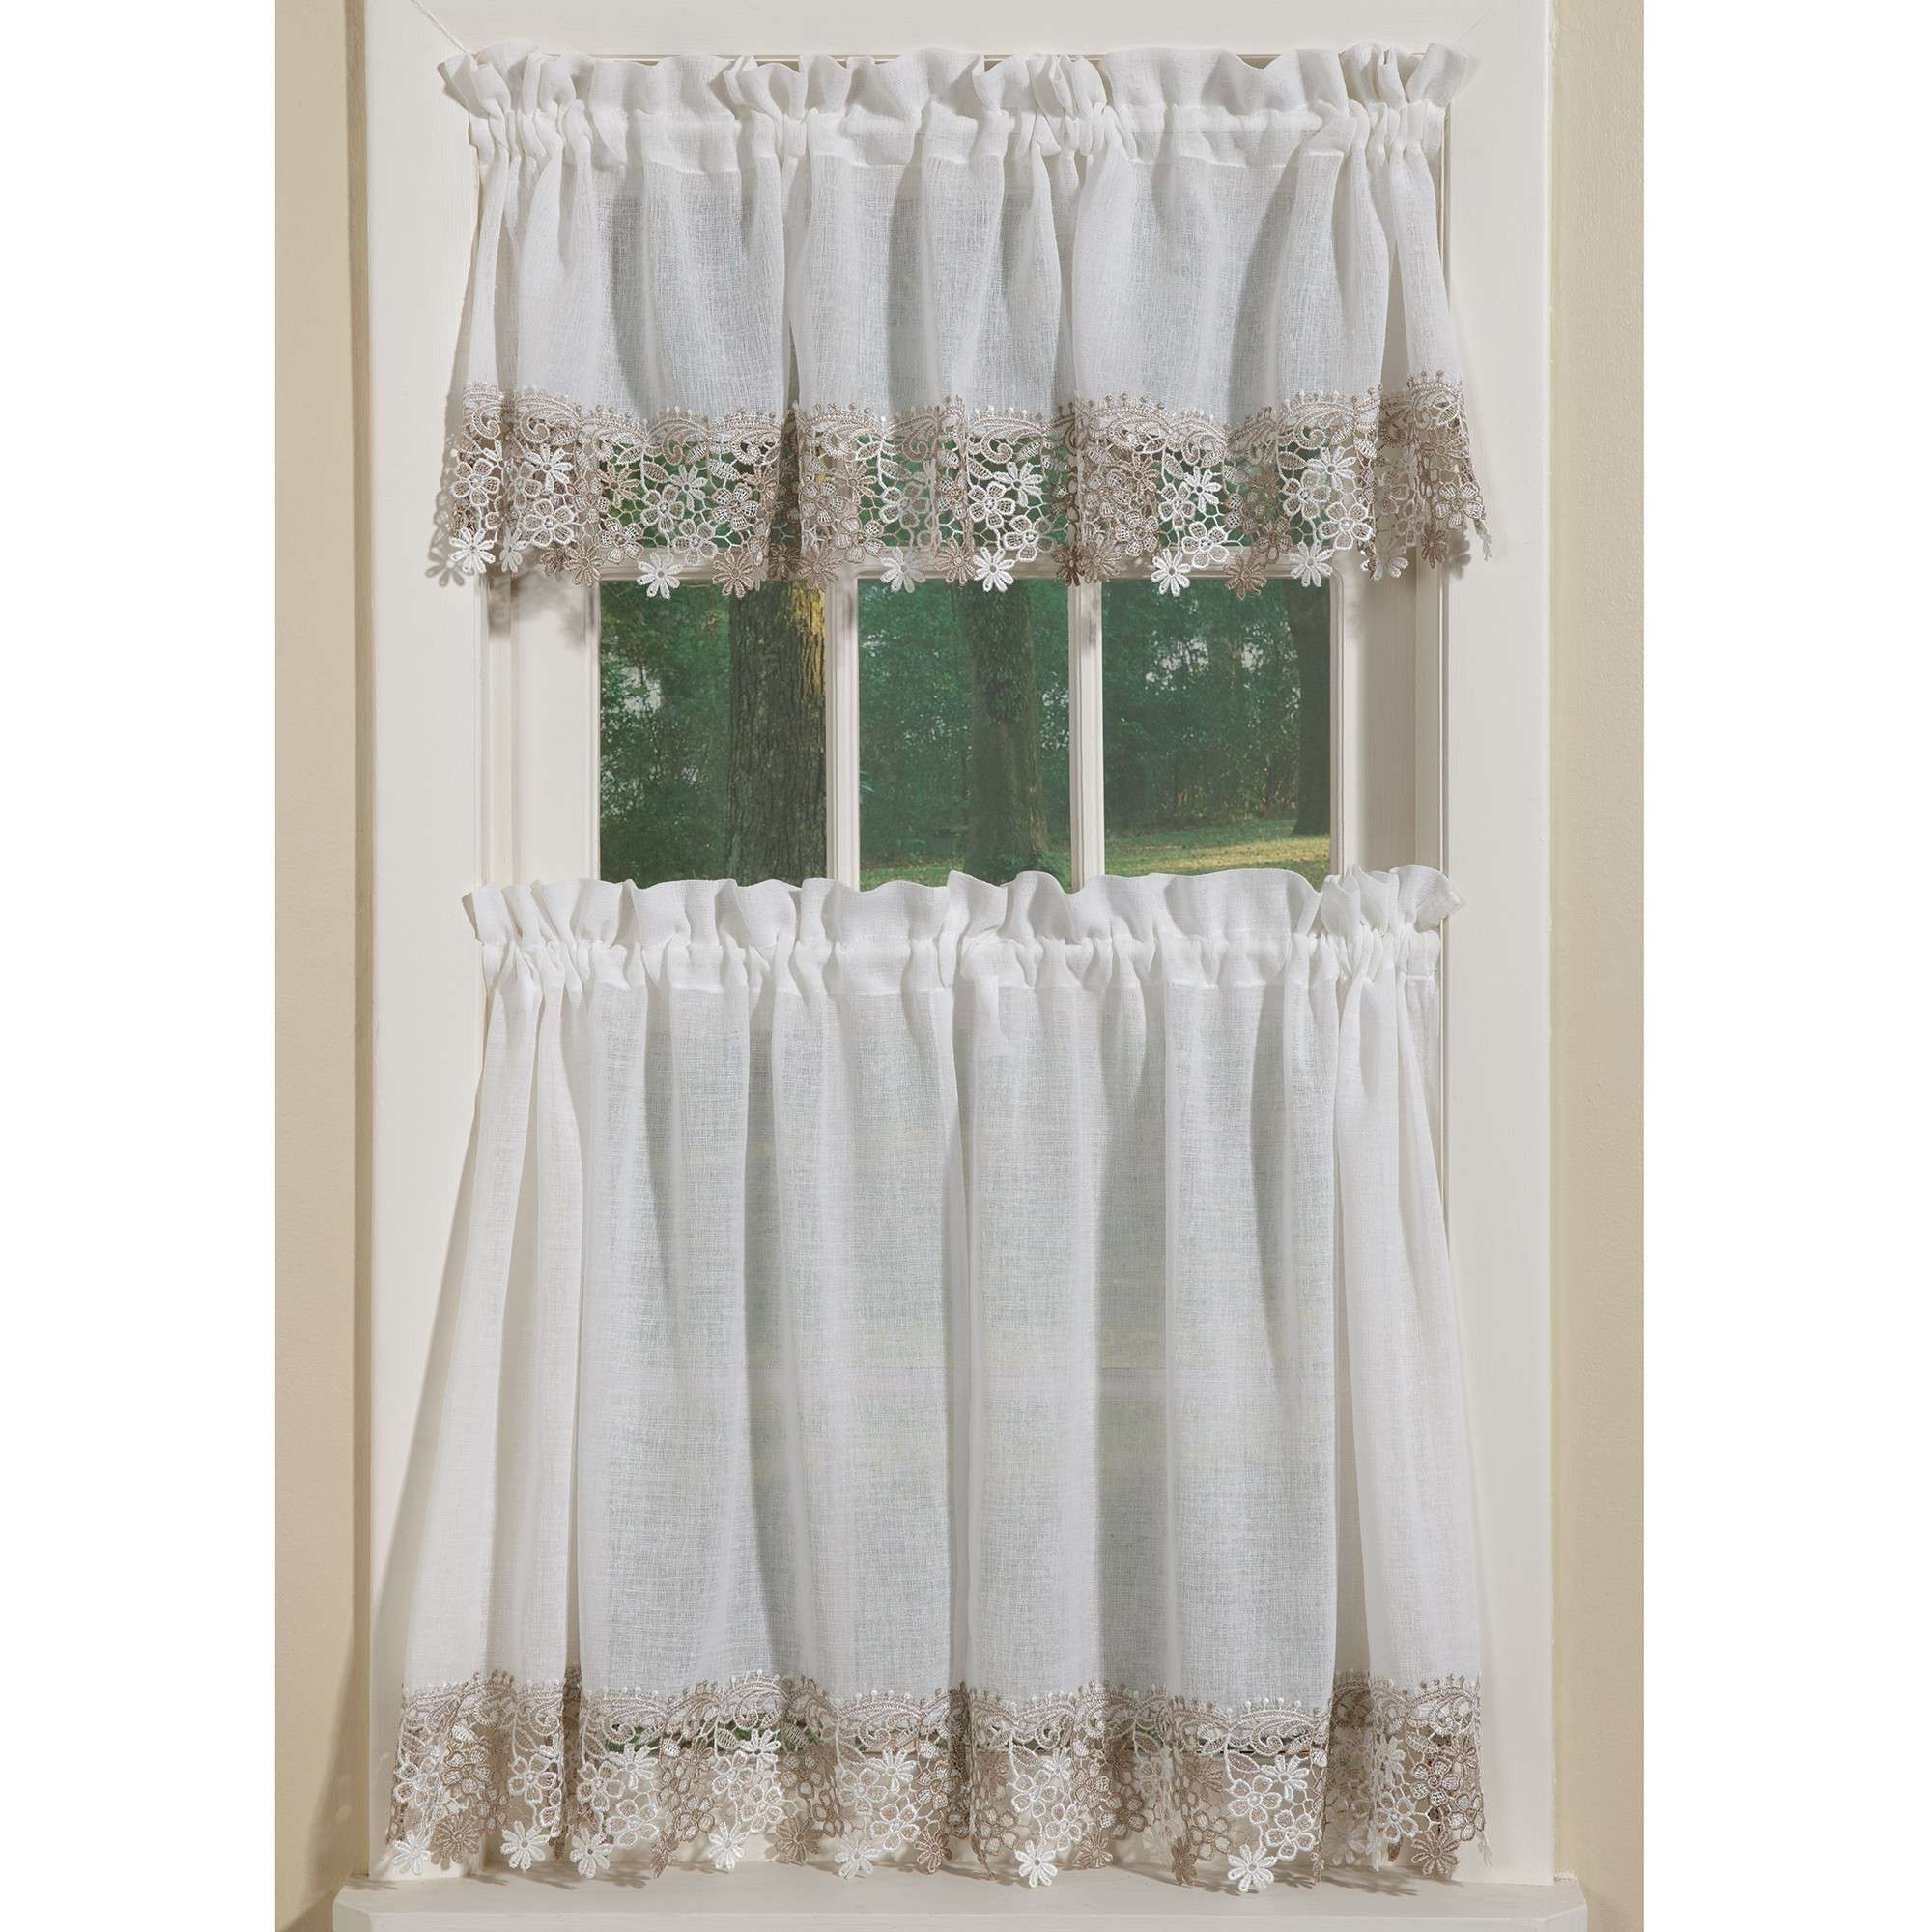 Most Recent Remarkable Lace Curtain Valances And Tiers Kitchen Curtains Pertaining To Sheer Lace Elongated Kitchen Curtain Tier Pairs (View 7 of 20)